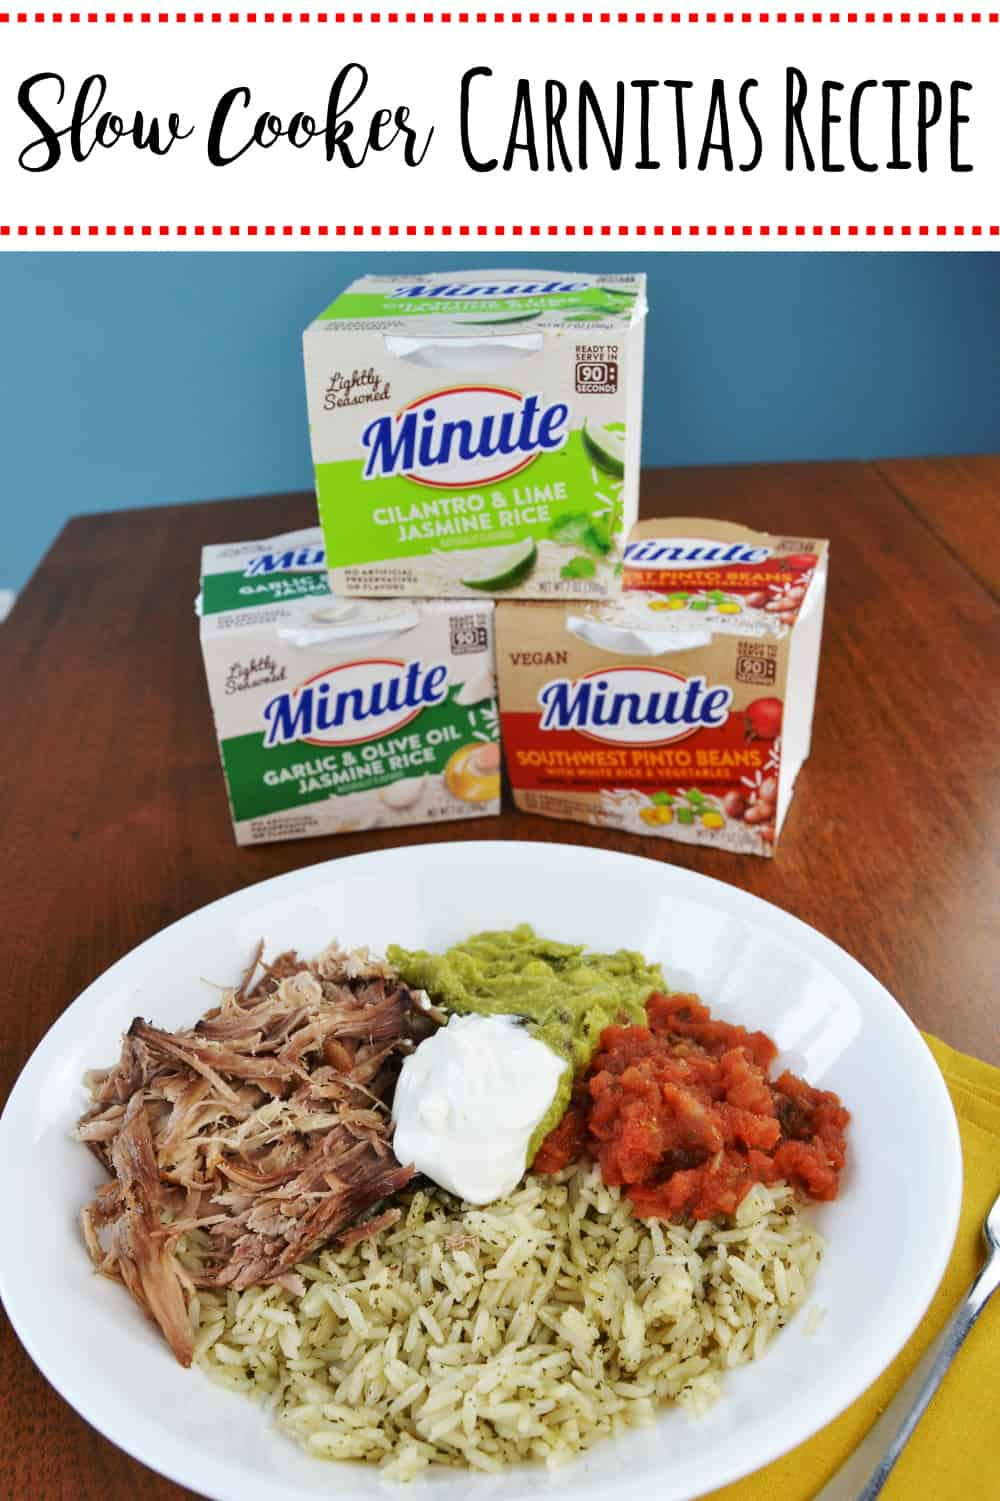 #AD Slow Cooker Carnitas Recipe- Follow this simple recipe to make pork carnitas in your slow cooker. These are perfect for making into rice bowls with Minute® Ready to Serve Rice. #RiceMadeEasy #CollectiveBias #slowcookercarnitasrecipe